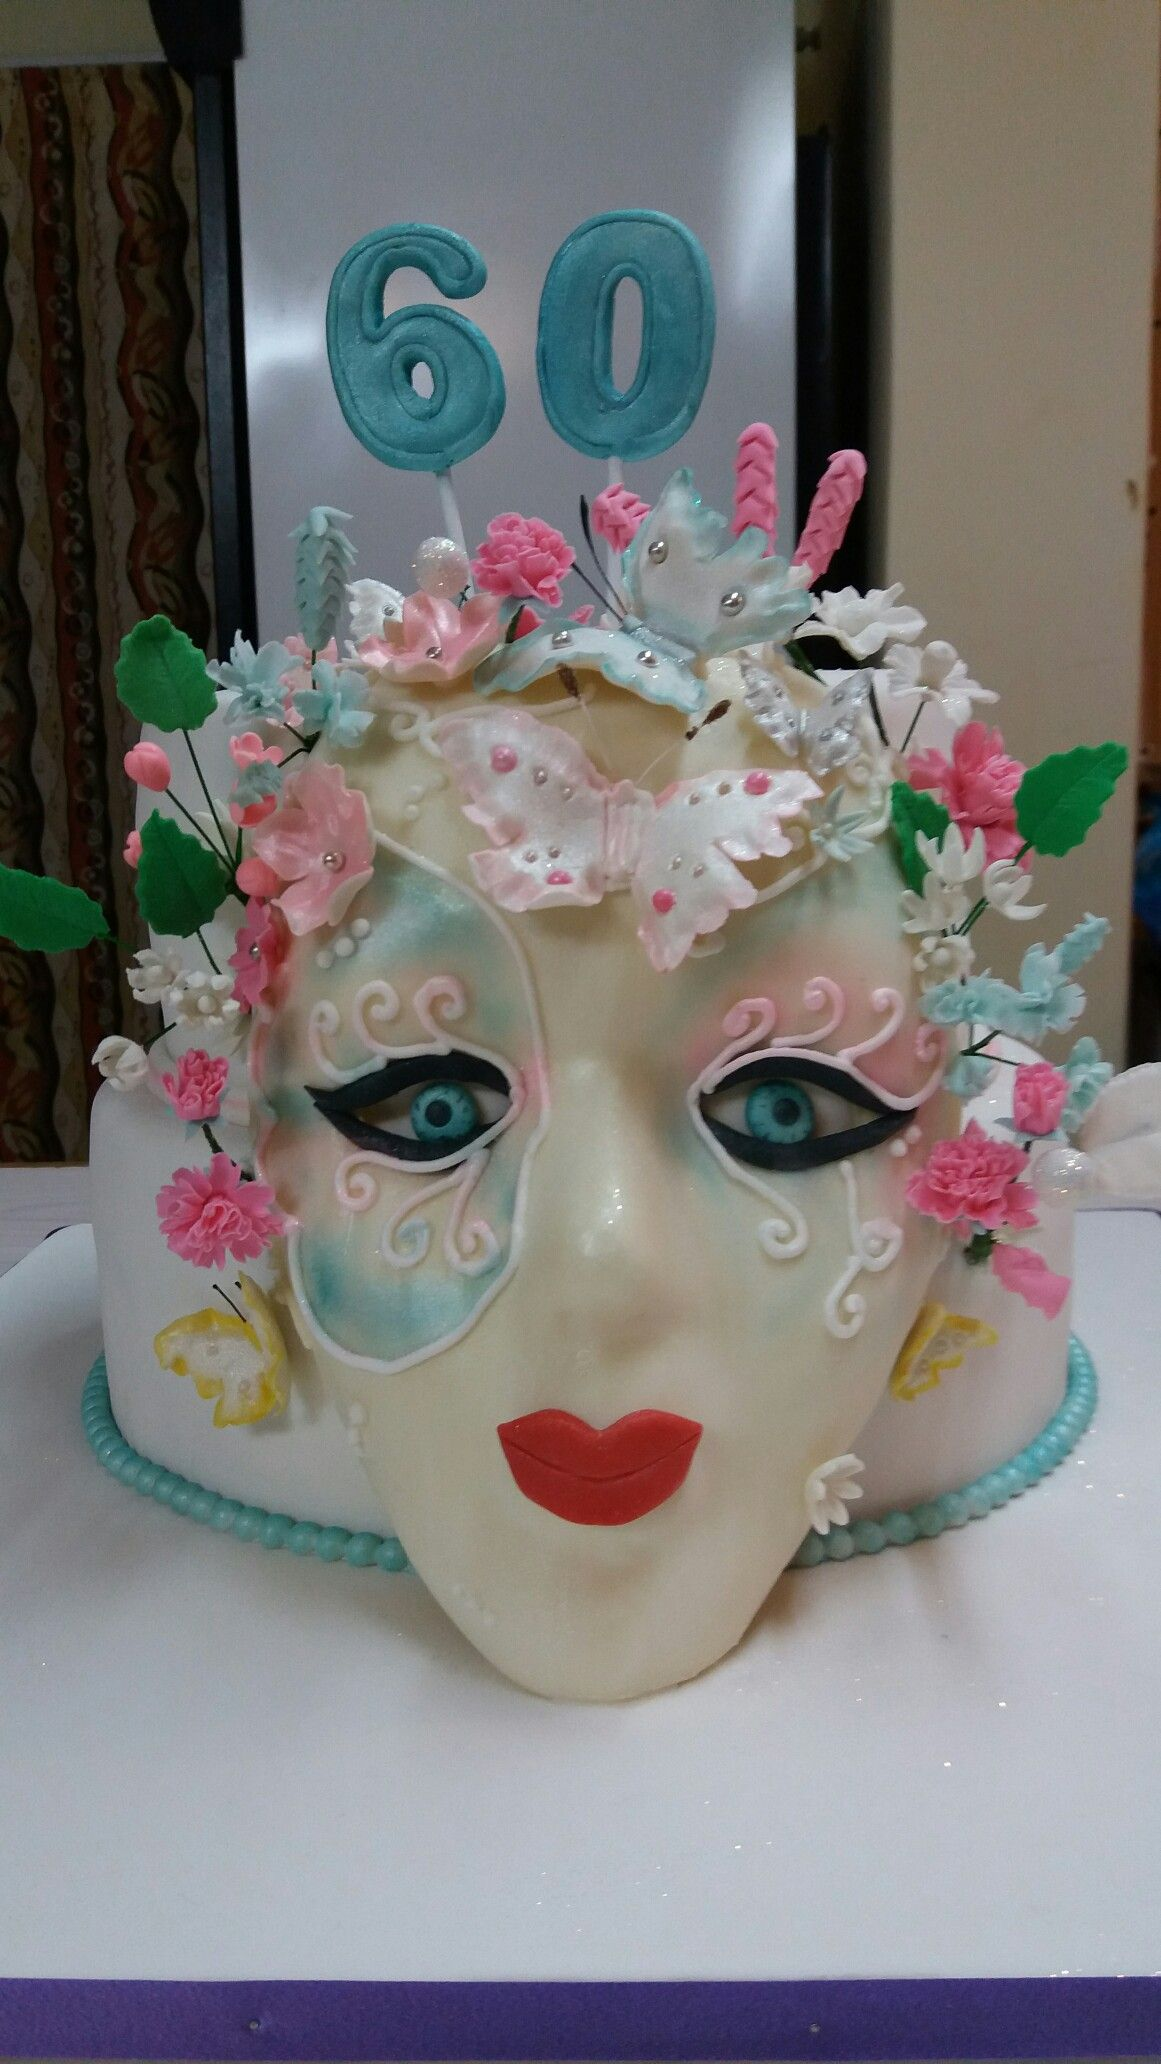 60th birthday butterflies and mask cake, made by Colleen de Wet.